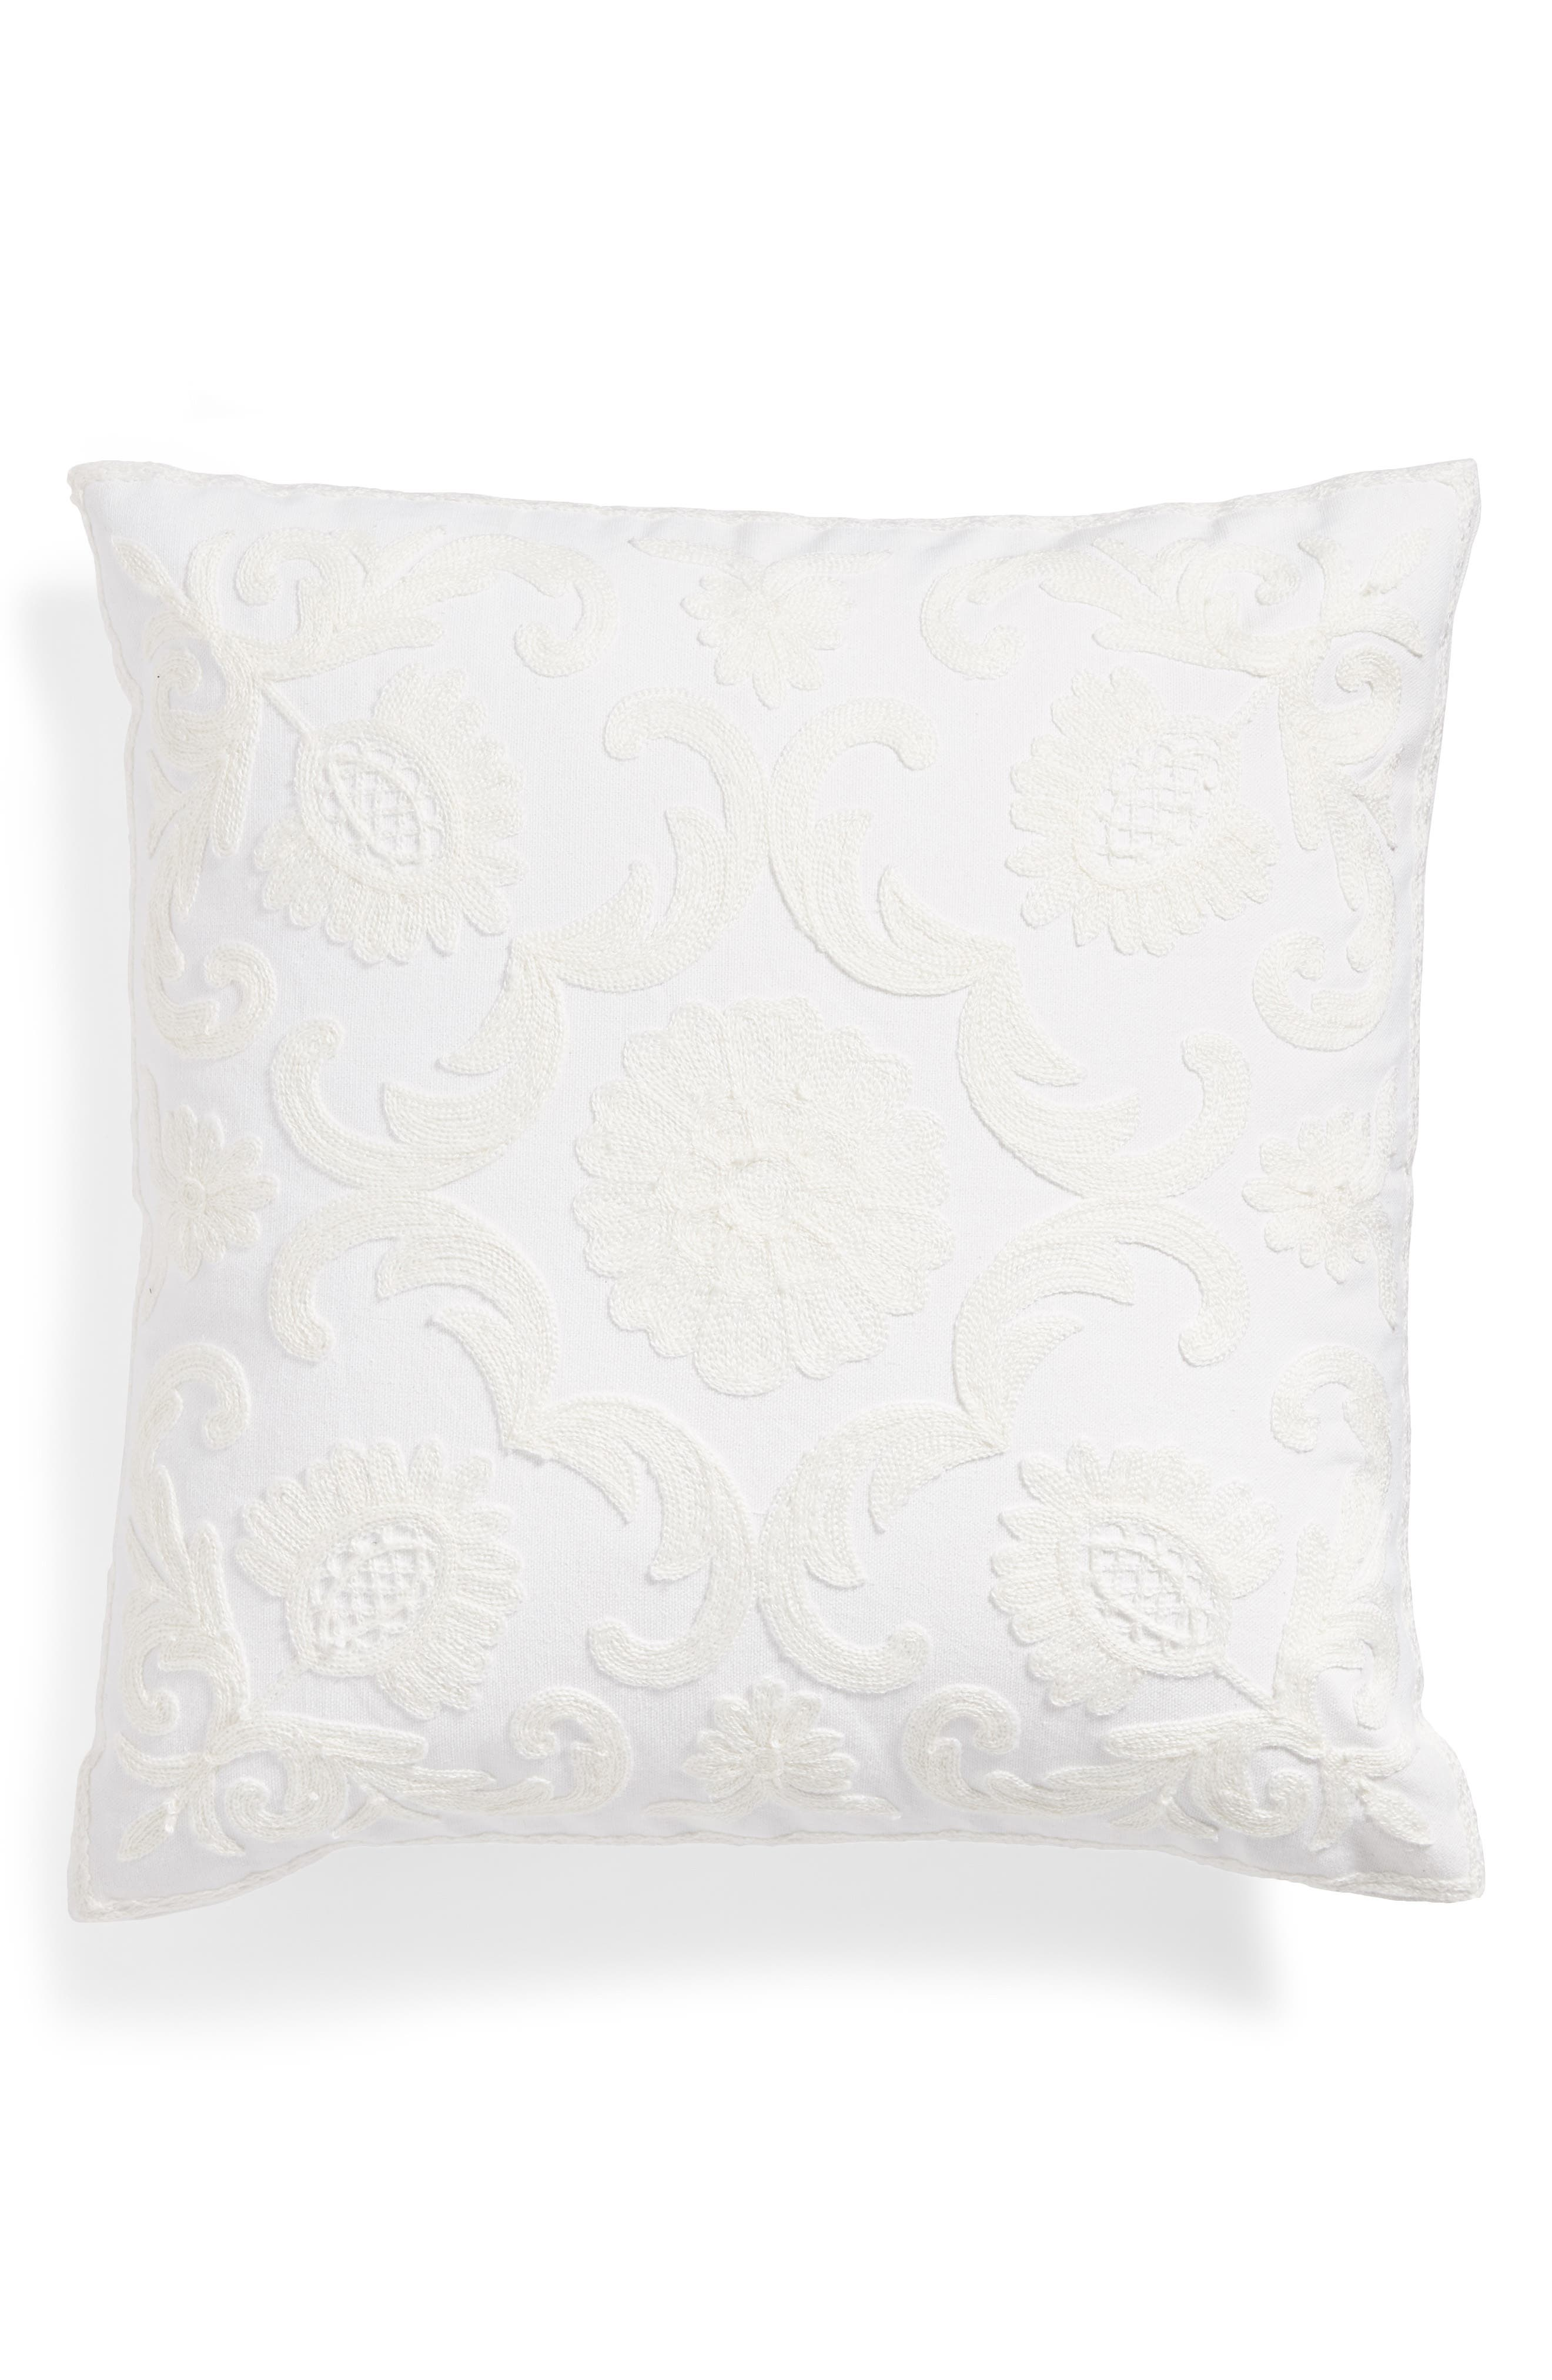 Bree Embroidered Accent Pillow,                         Main,                         color, White